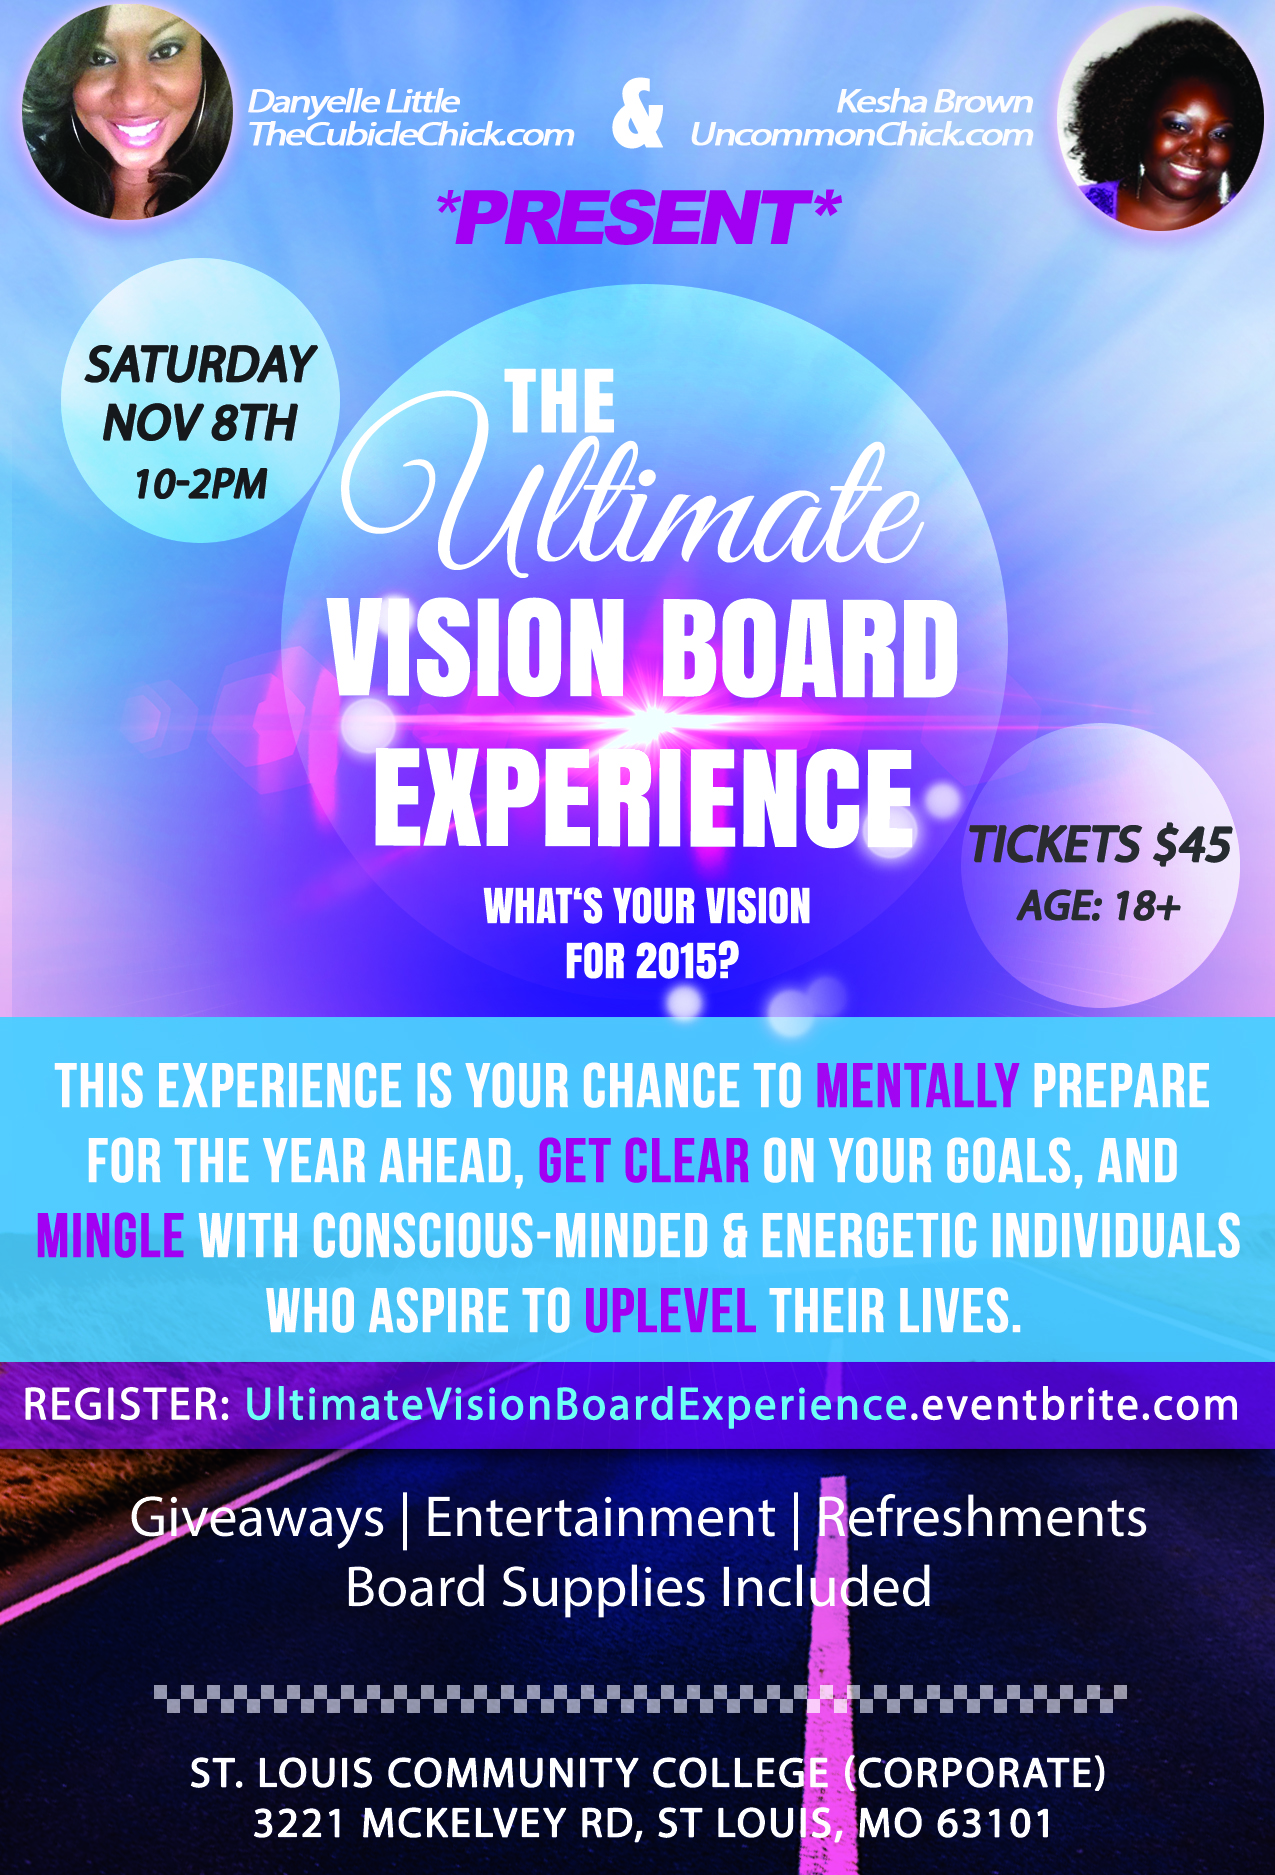 Ultimate Vision Board Experience Flyer Uncommon Chick